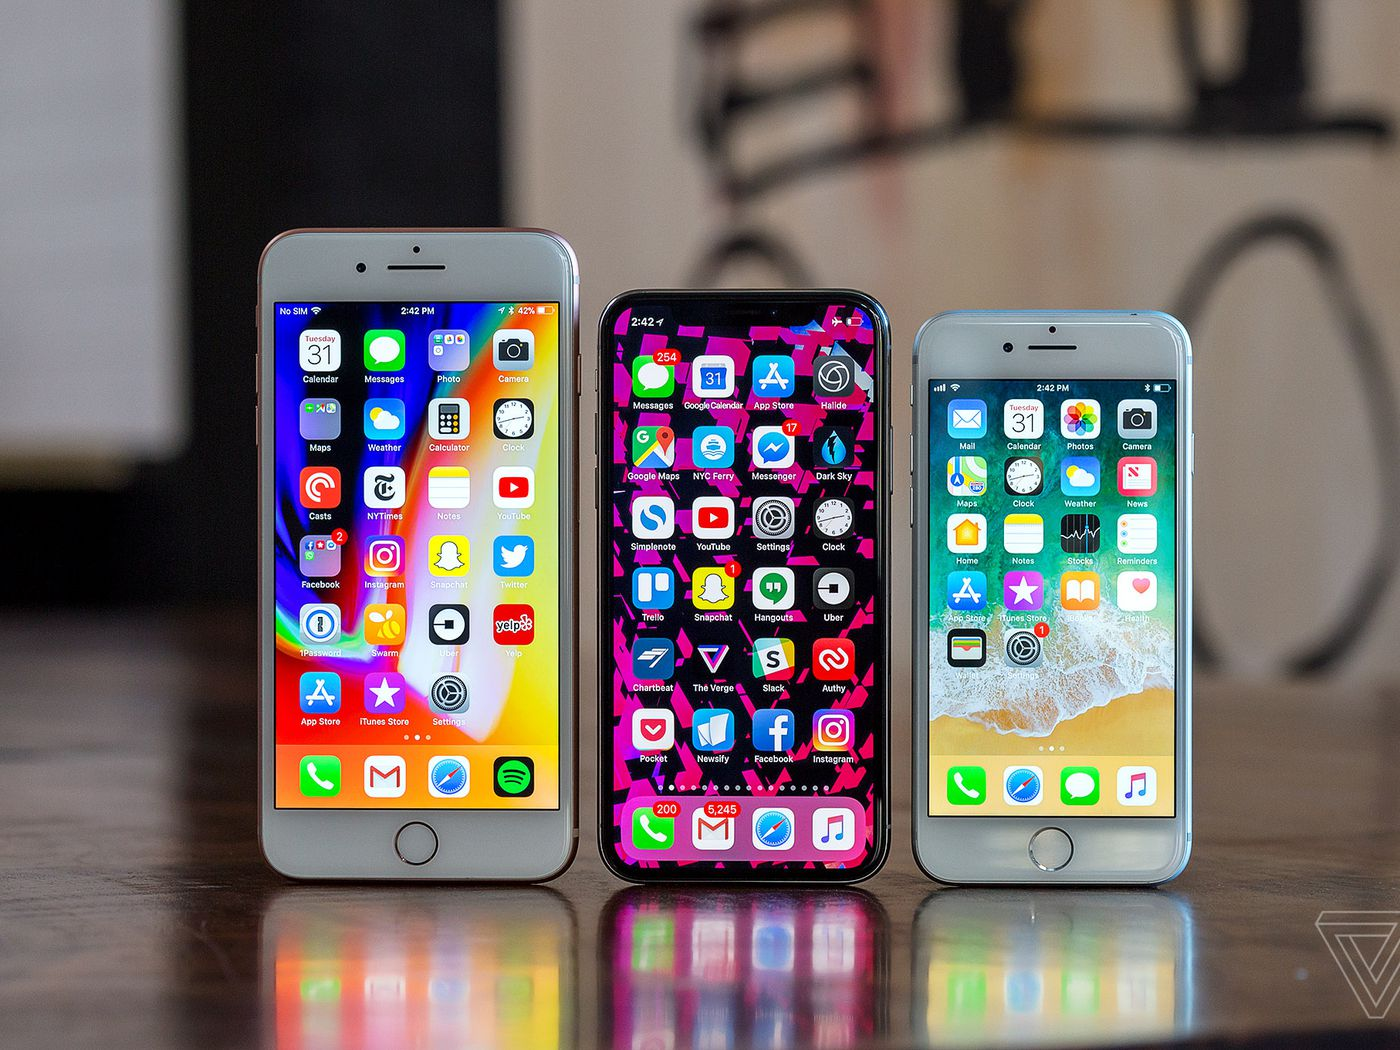 New Unpatchable Iphone Exploit Could Allow For Permanent Jailbreaking The Verge